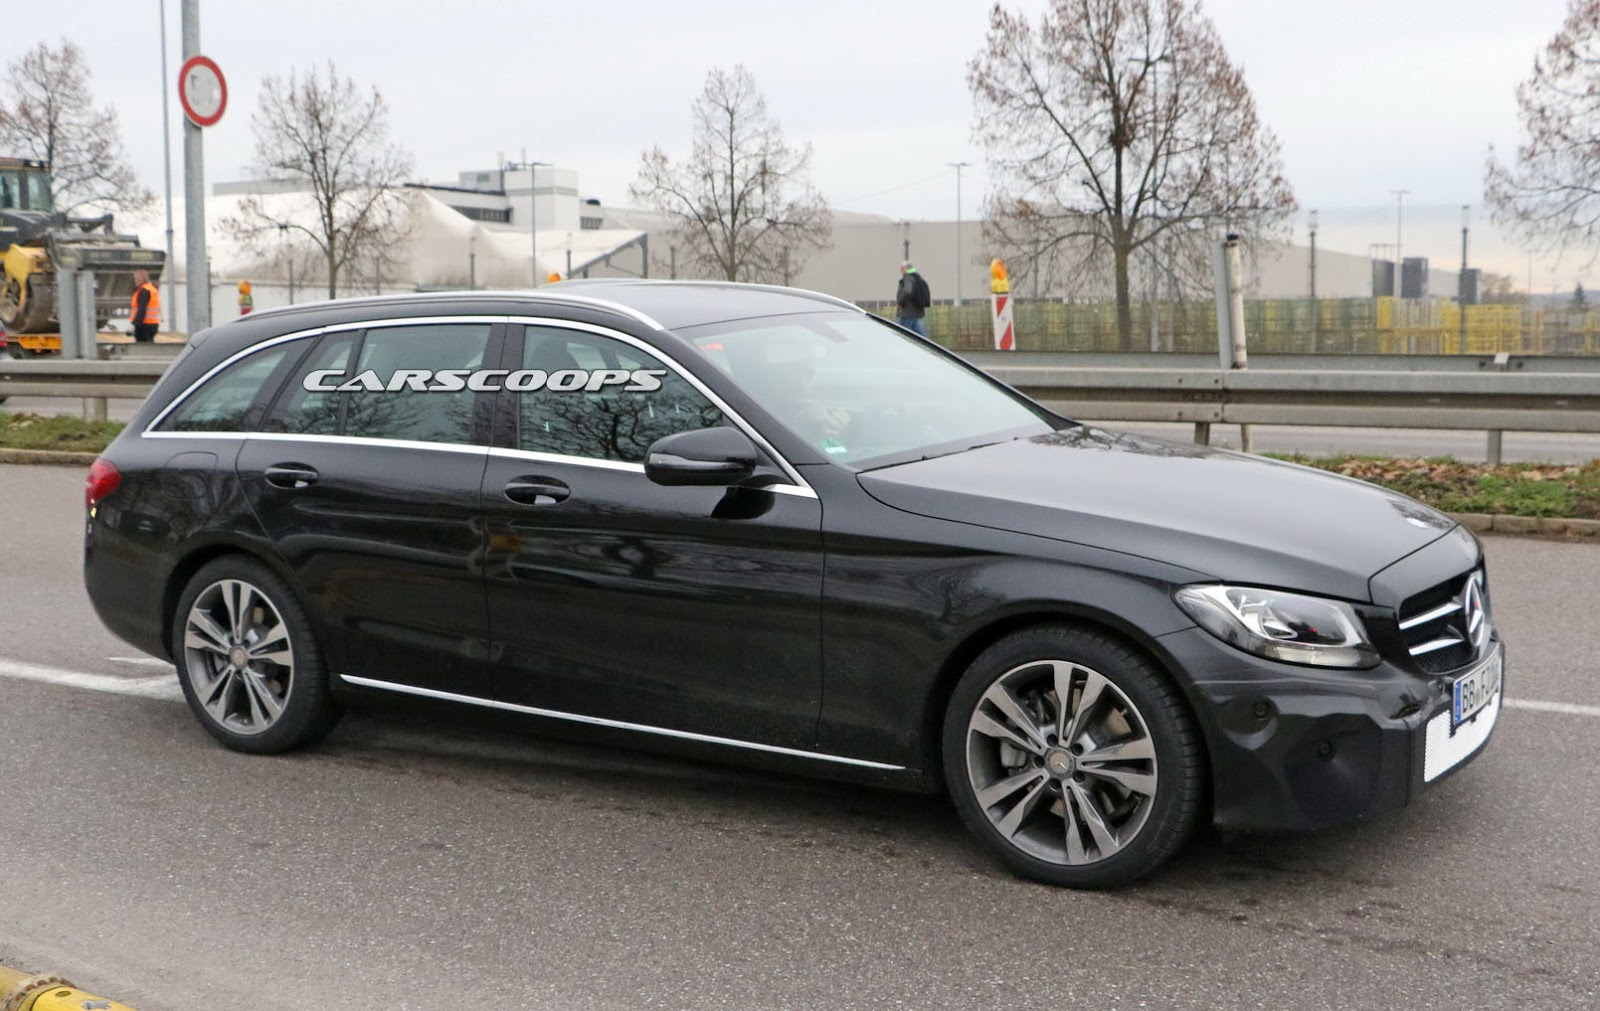 facelifted mercedes c class sedan and estate reveal refreshed interior carscoops. Black Bedroom Furniture Sets. Home Design Ideas